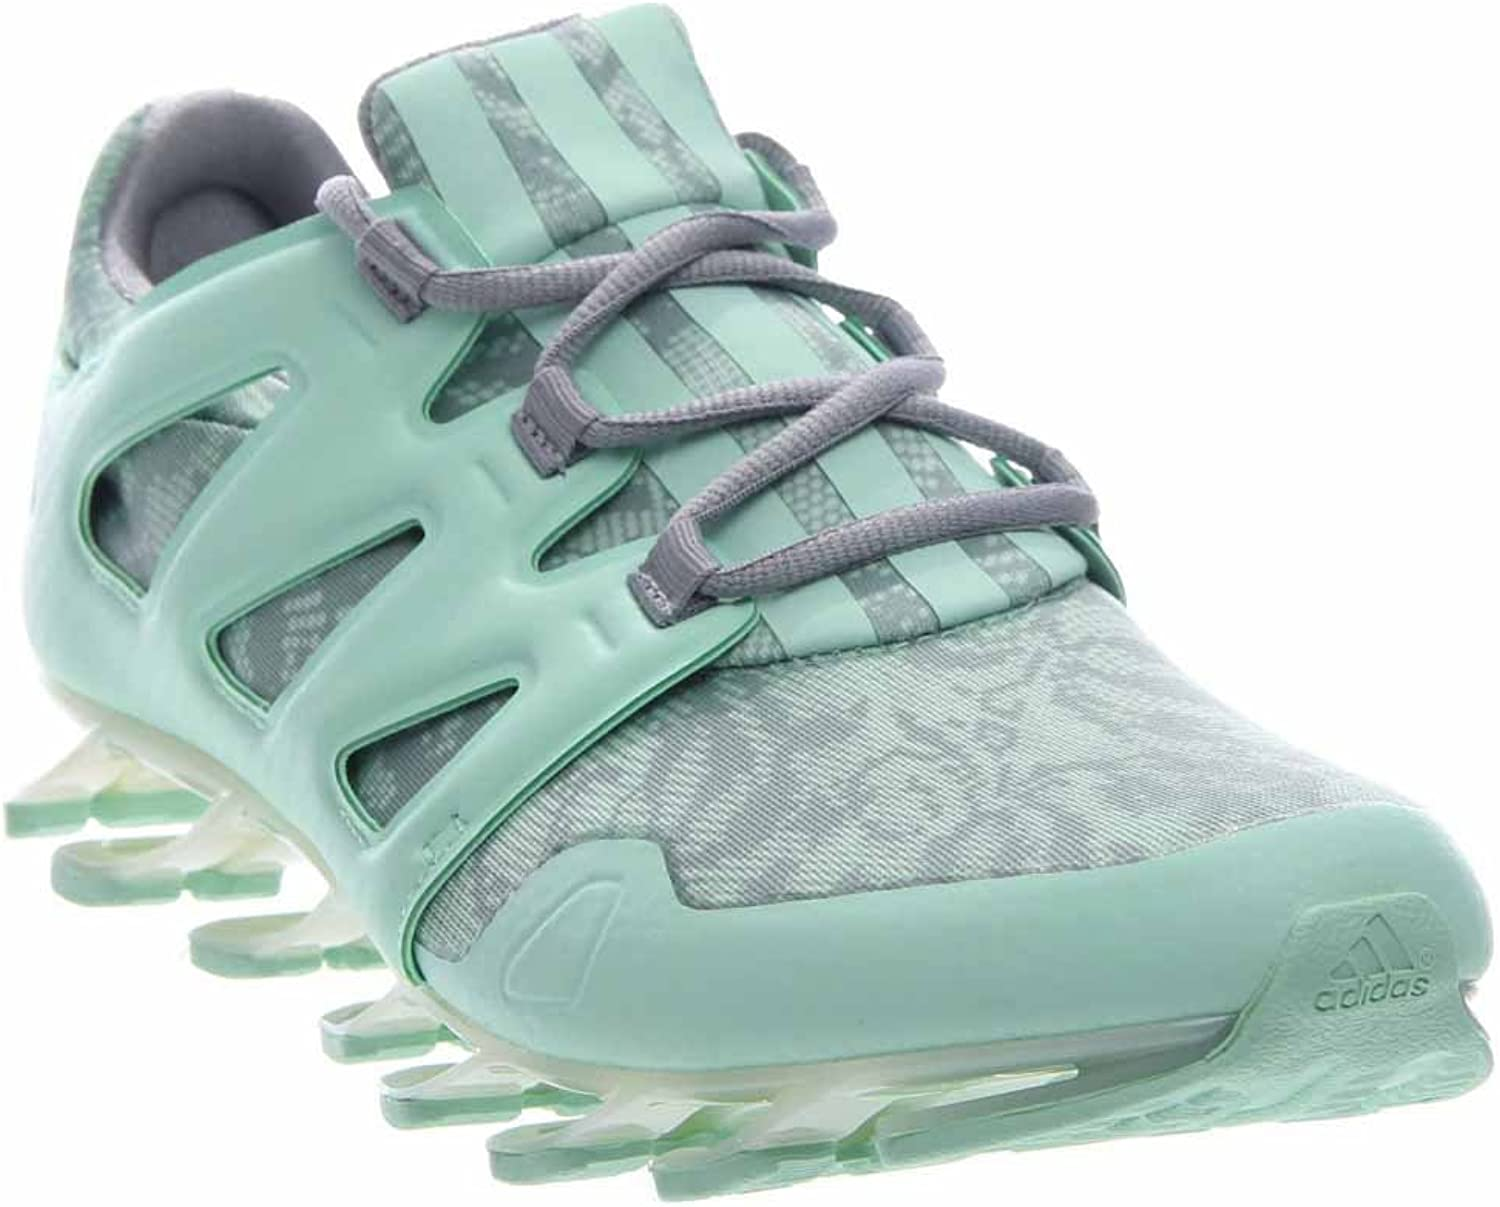 Adidas Springblade Pro Womens Running-shoes Q16424